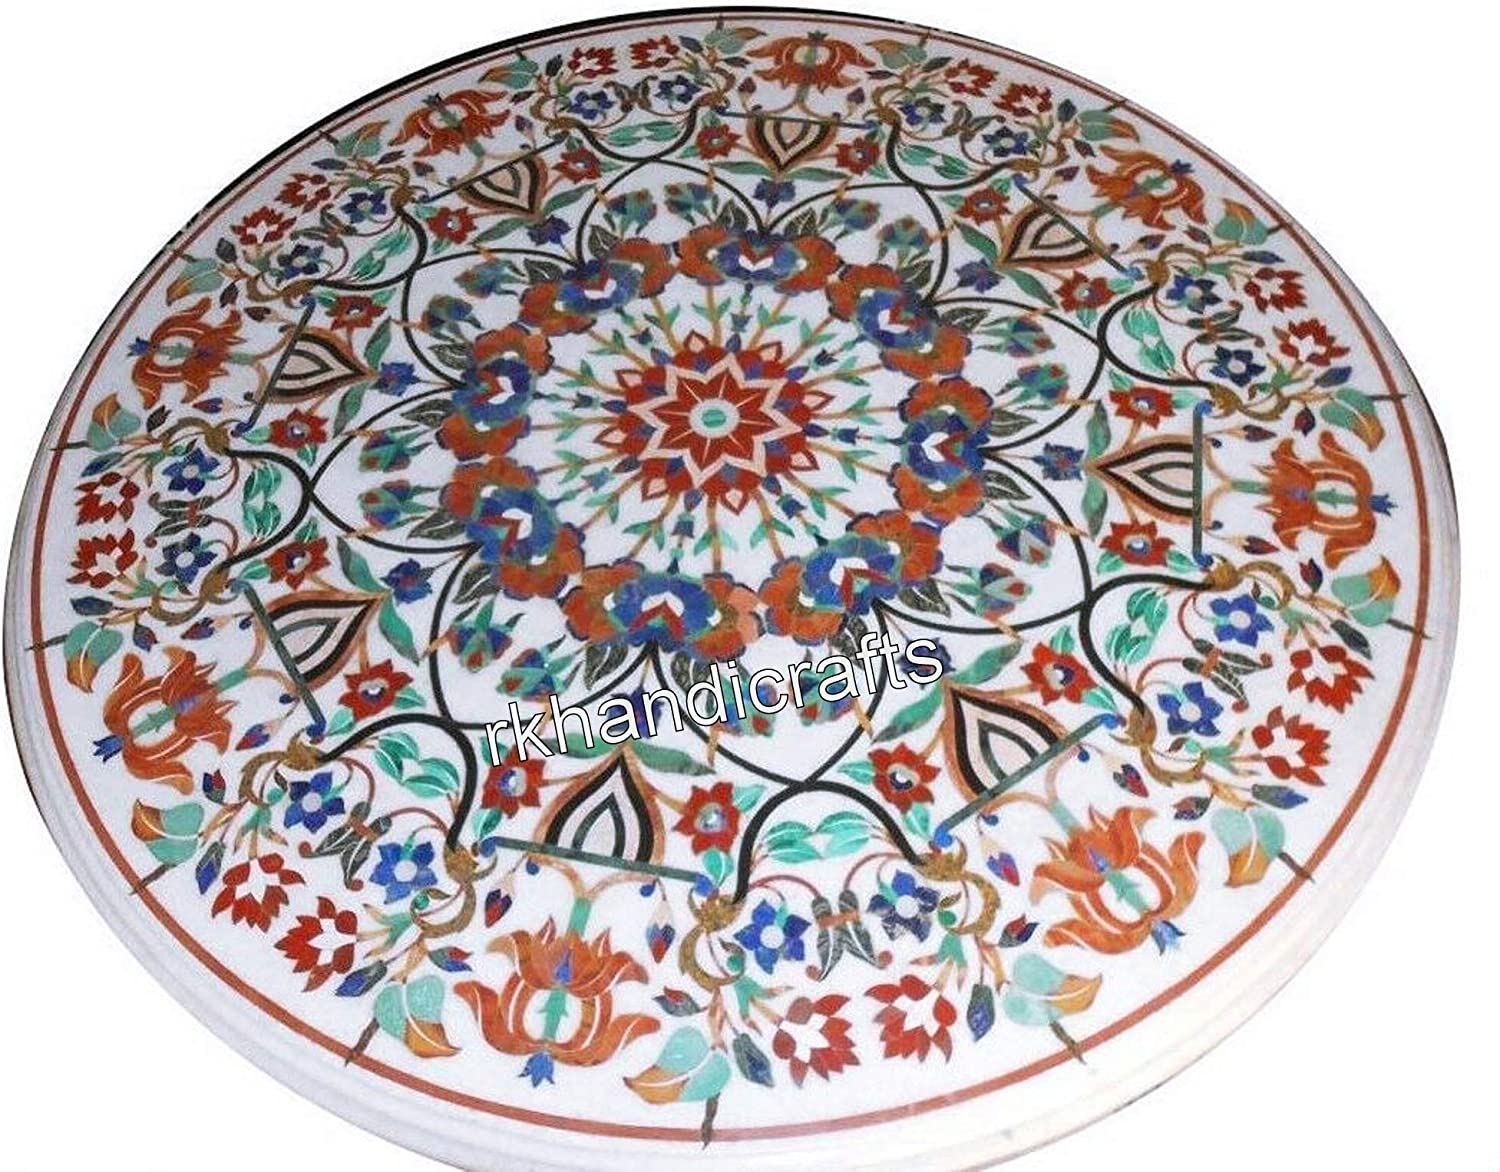 60 x 60 Inches White Marble Restaurant Table Top Royal Meeting Furniture with Vintage Craft Handcrafted from India